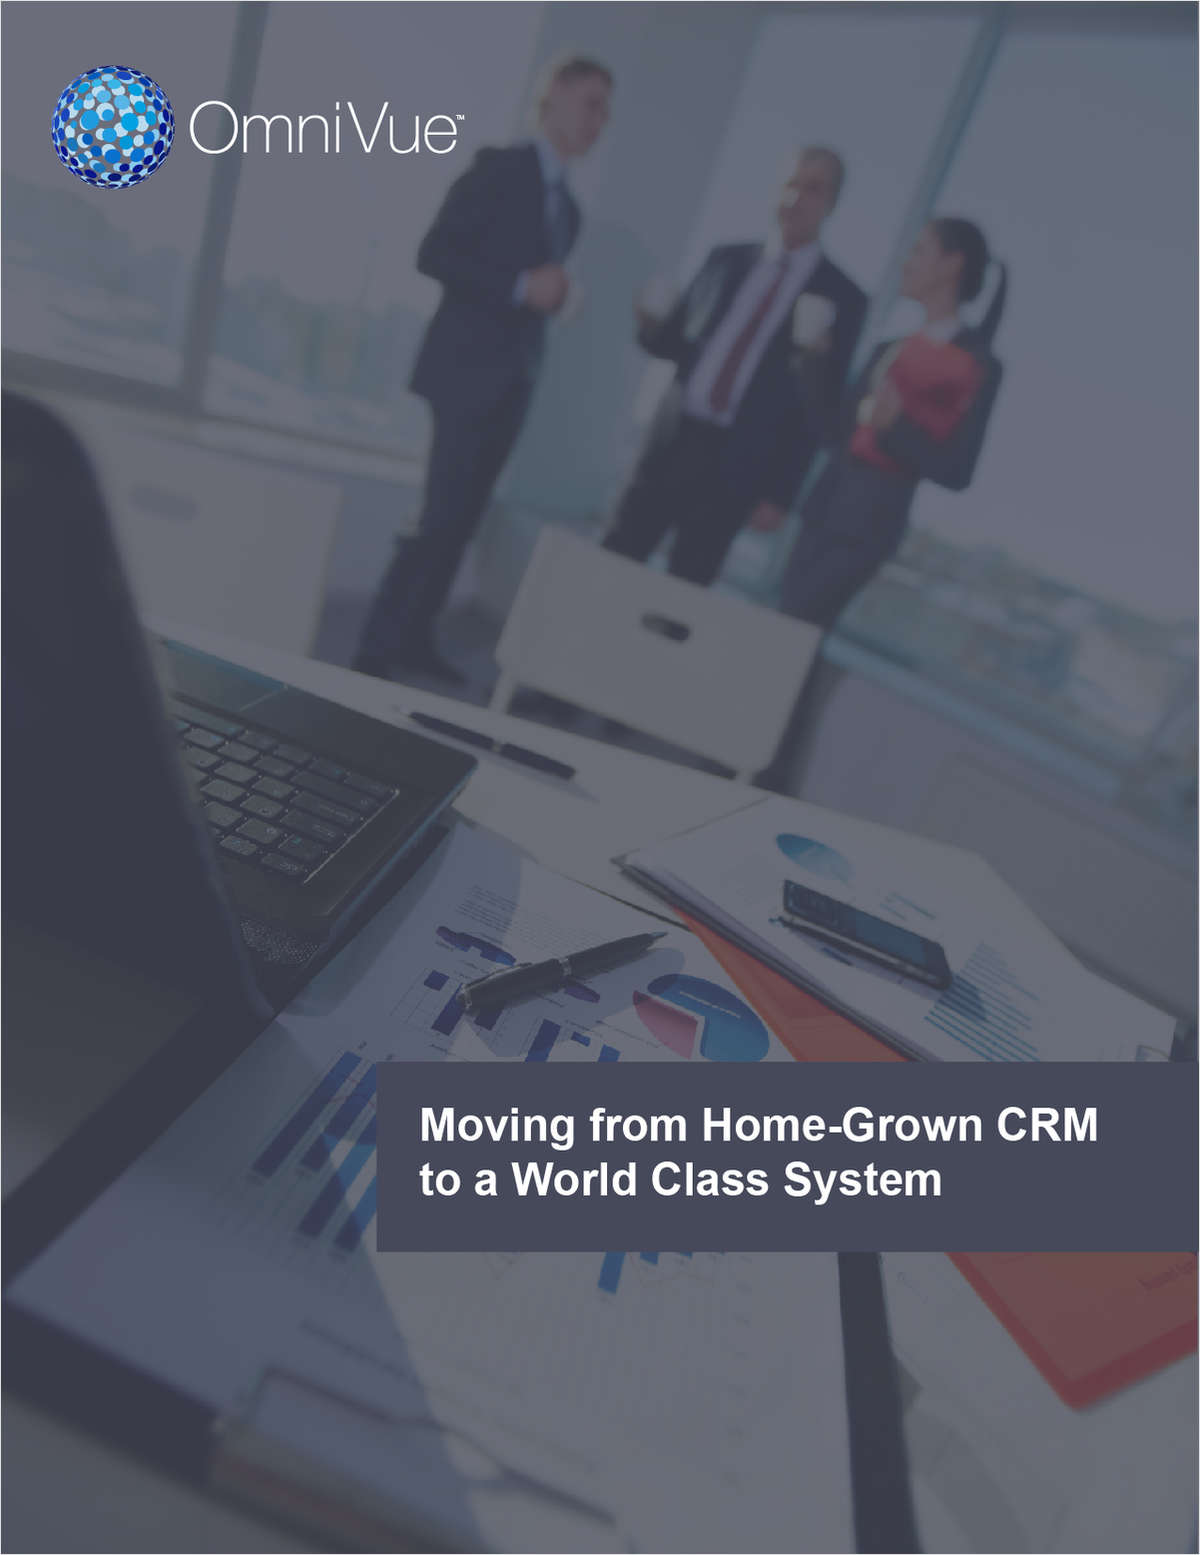 Why install a world-class CRM system?